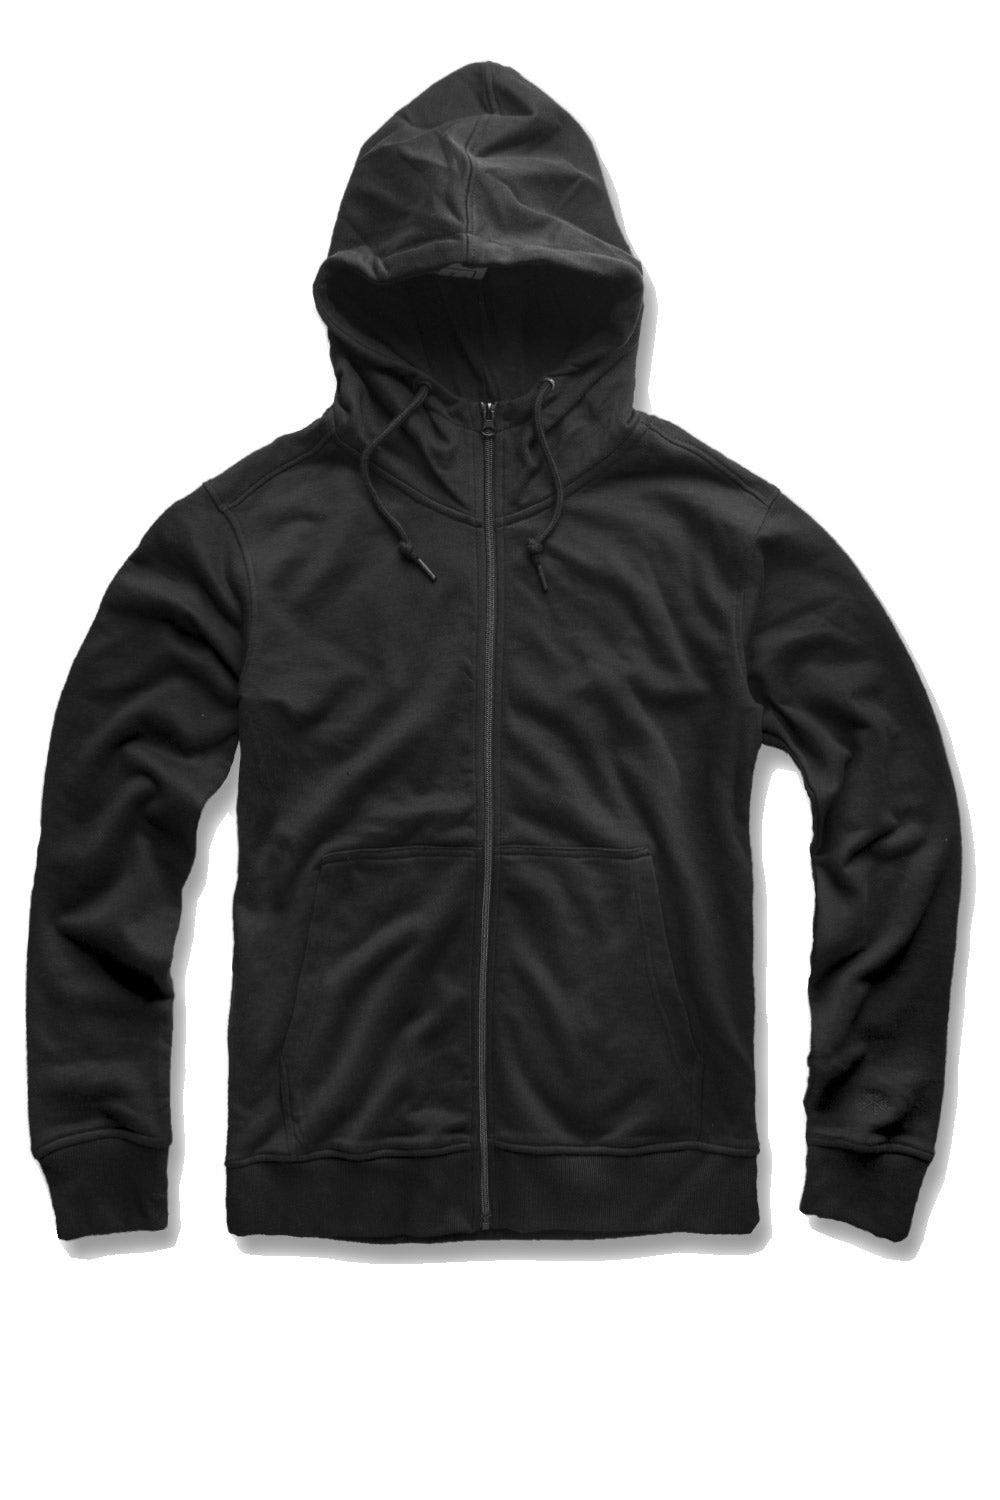 Jordan Craig - French Terry Essential Zip Up Hoodie (Black)